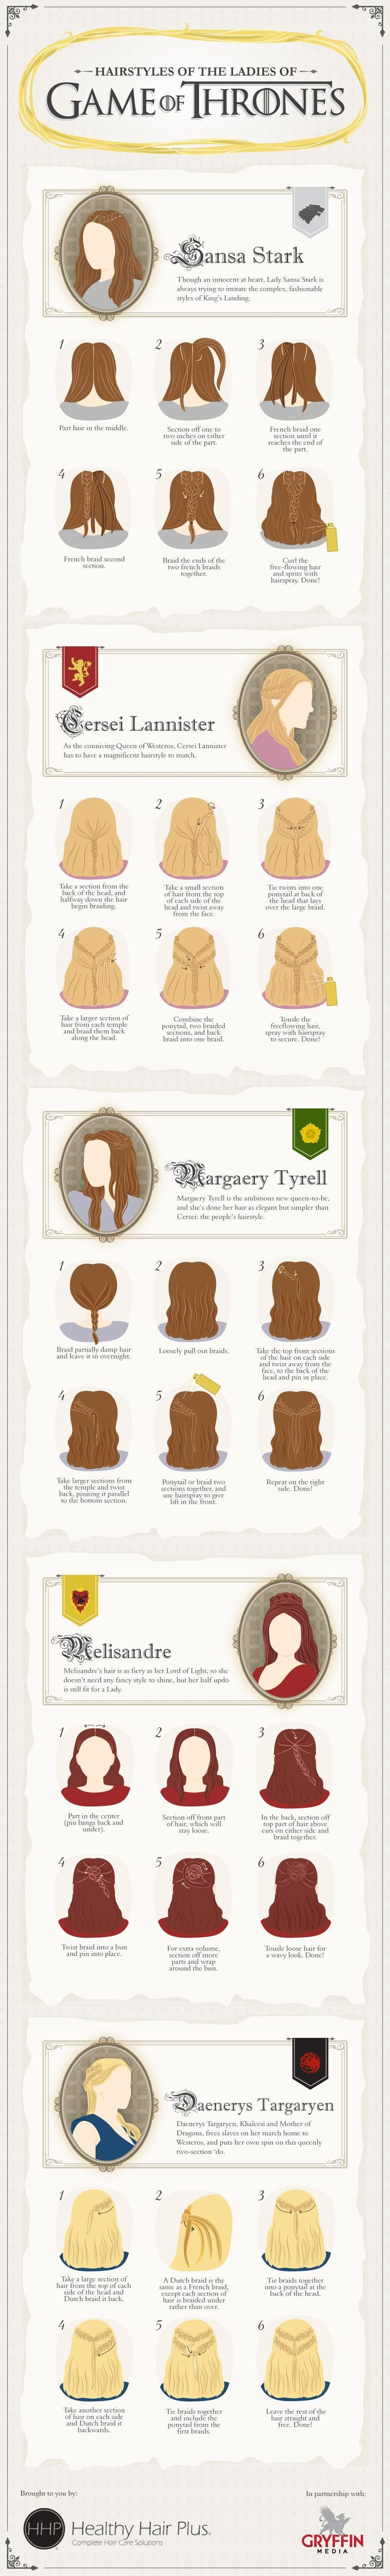 Women of Game of Thrones hairstyles